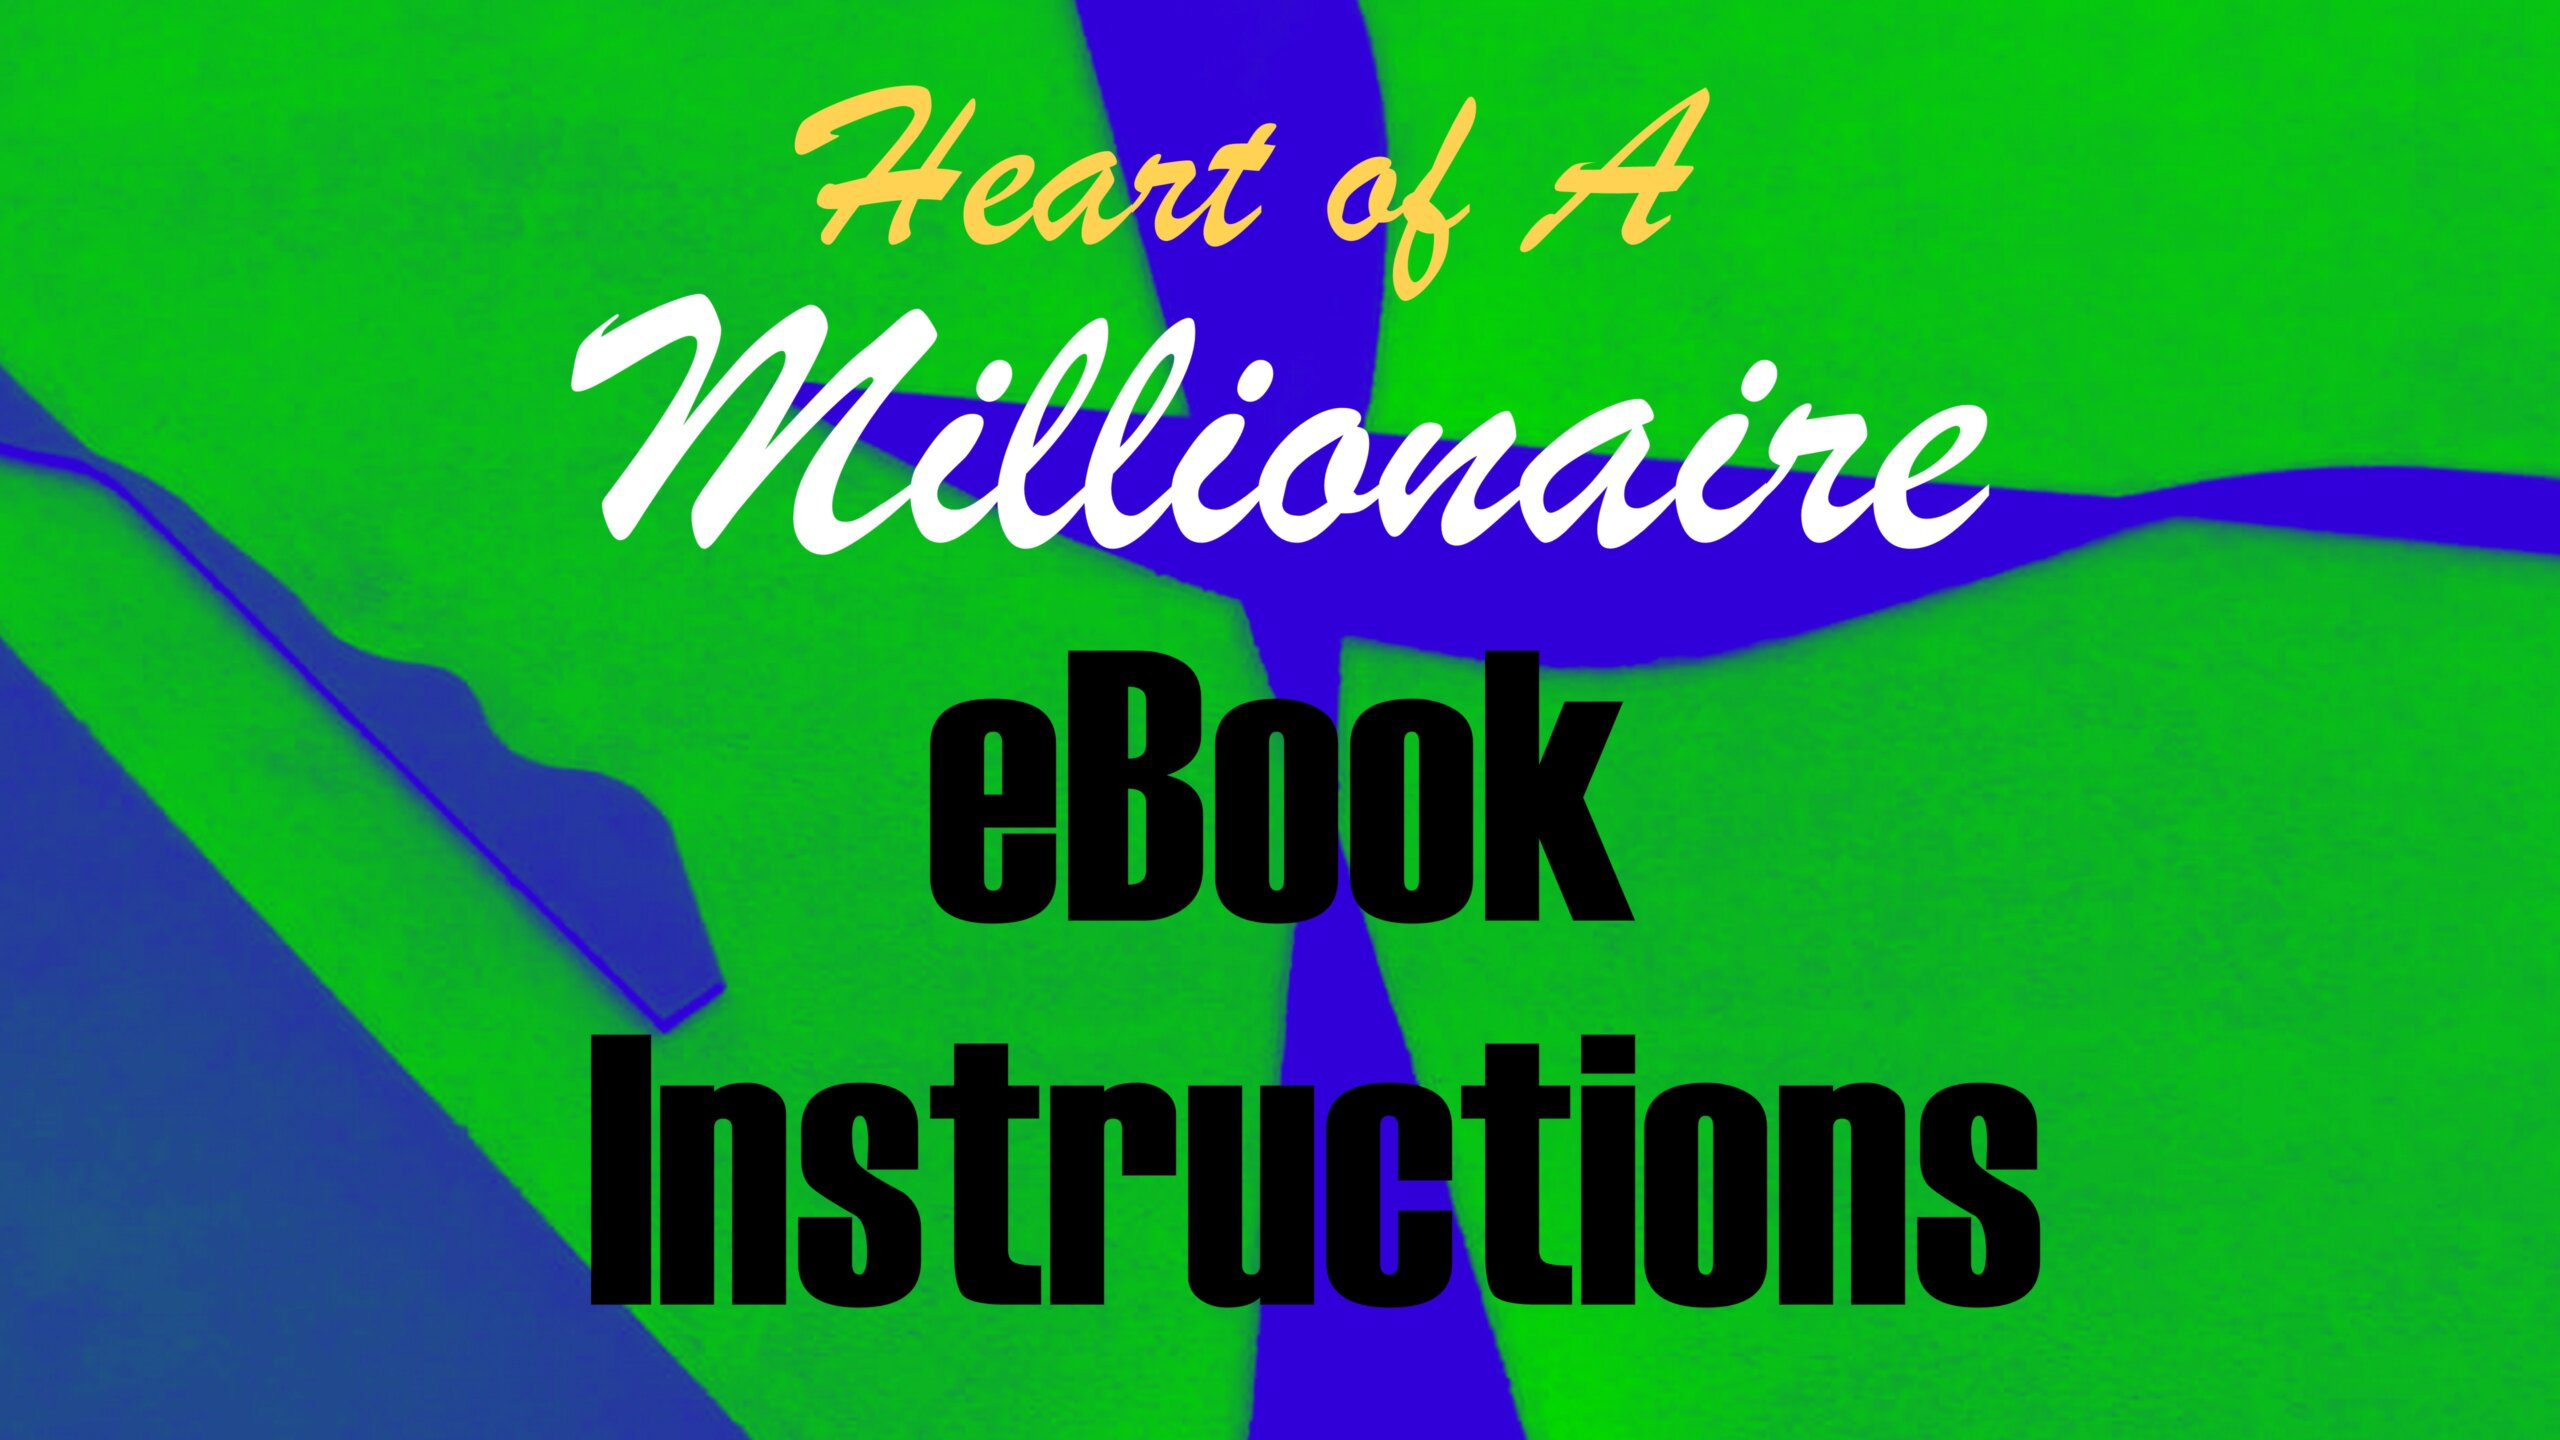 Heart of A Millionaire eBook Instructions